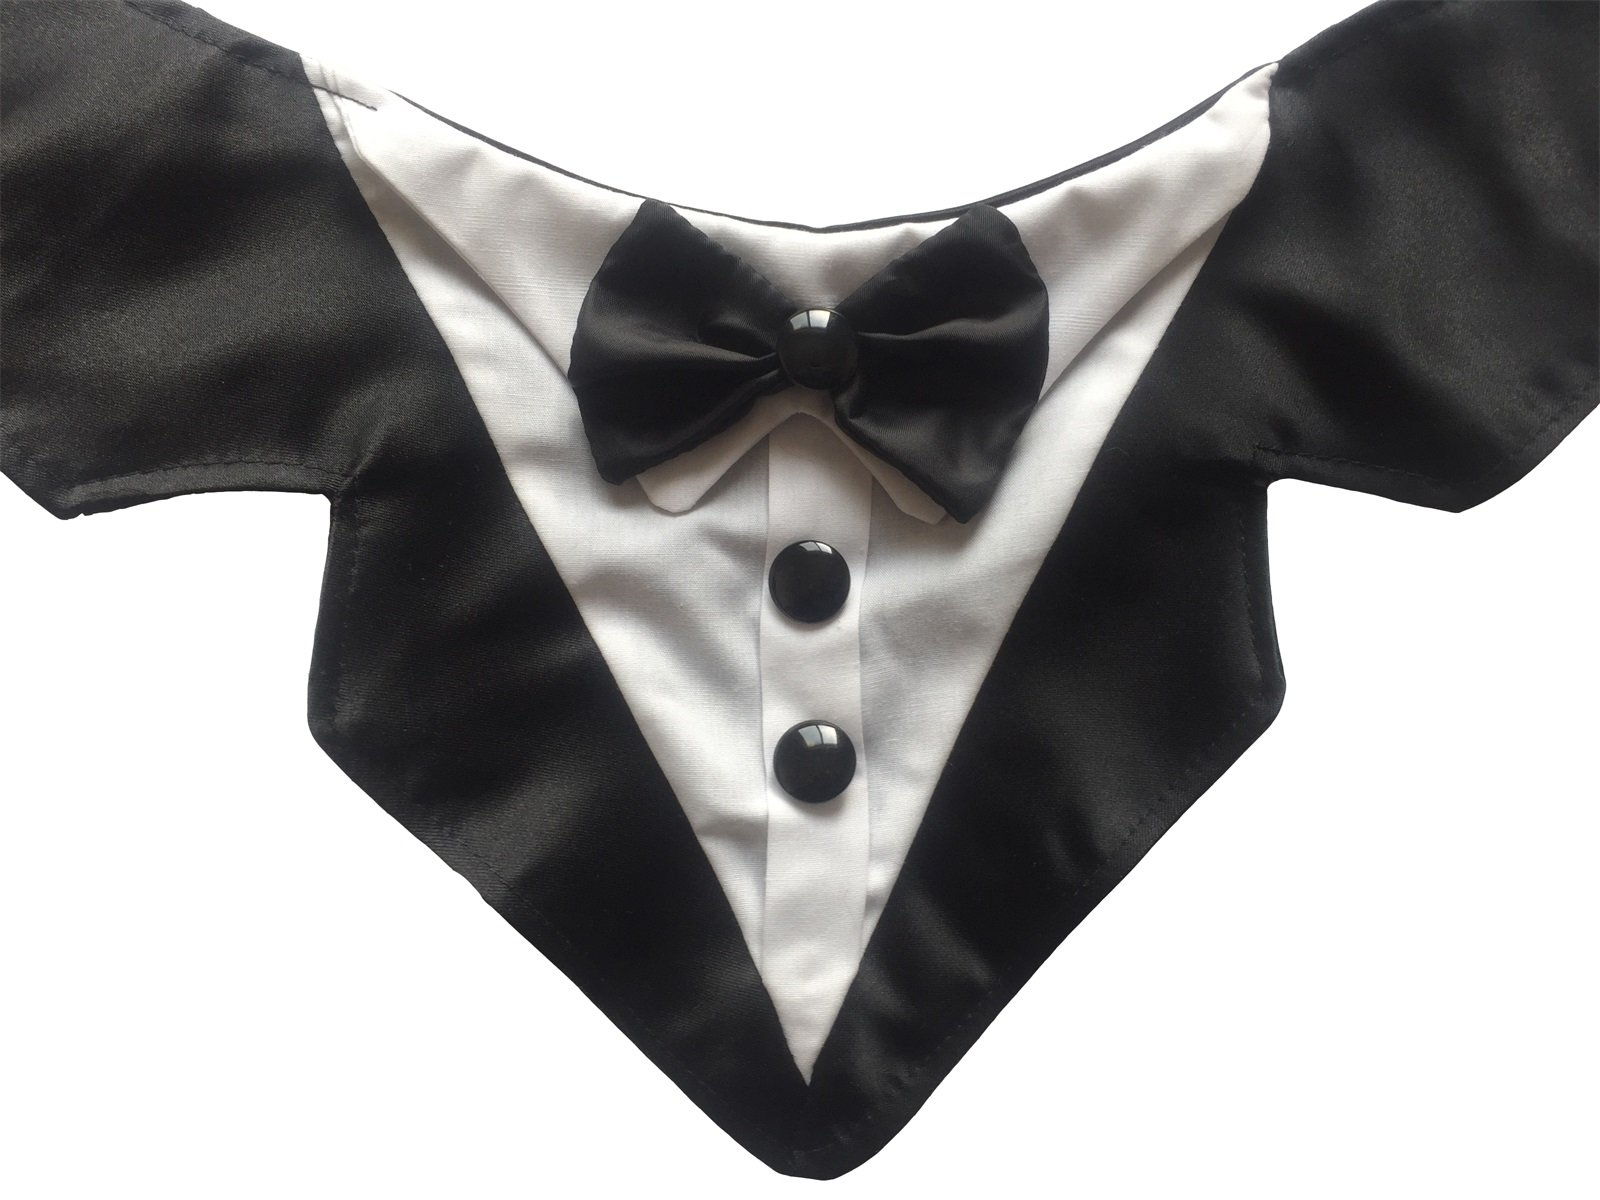 Vedem Formal Dog Tuxedo Bandana with Bow Tie Adjustable Pet Satin Triangle Bibs Scarf for Wedding, Party and Birthday (Black)